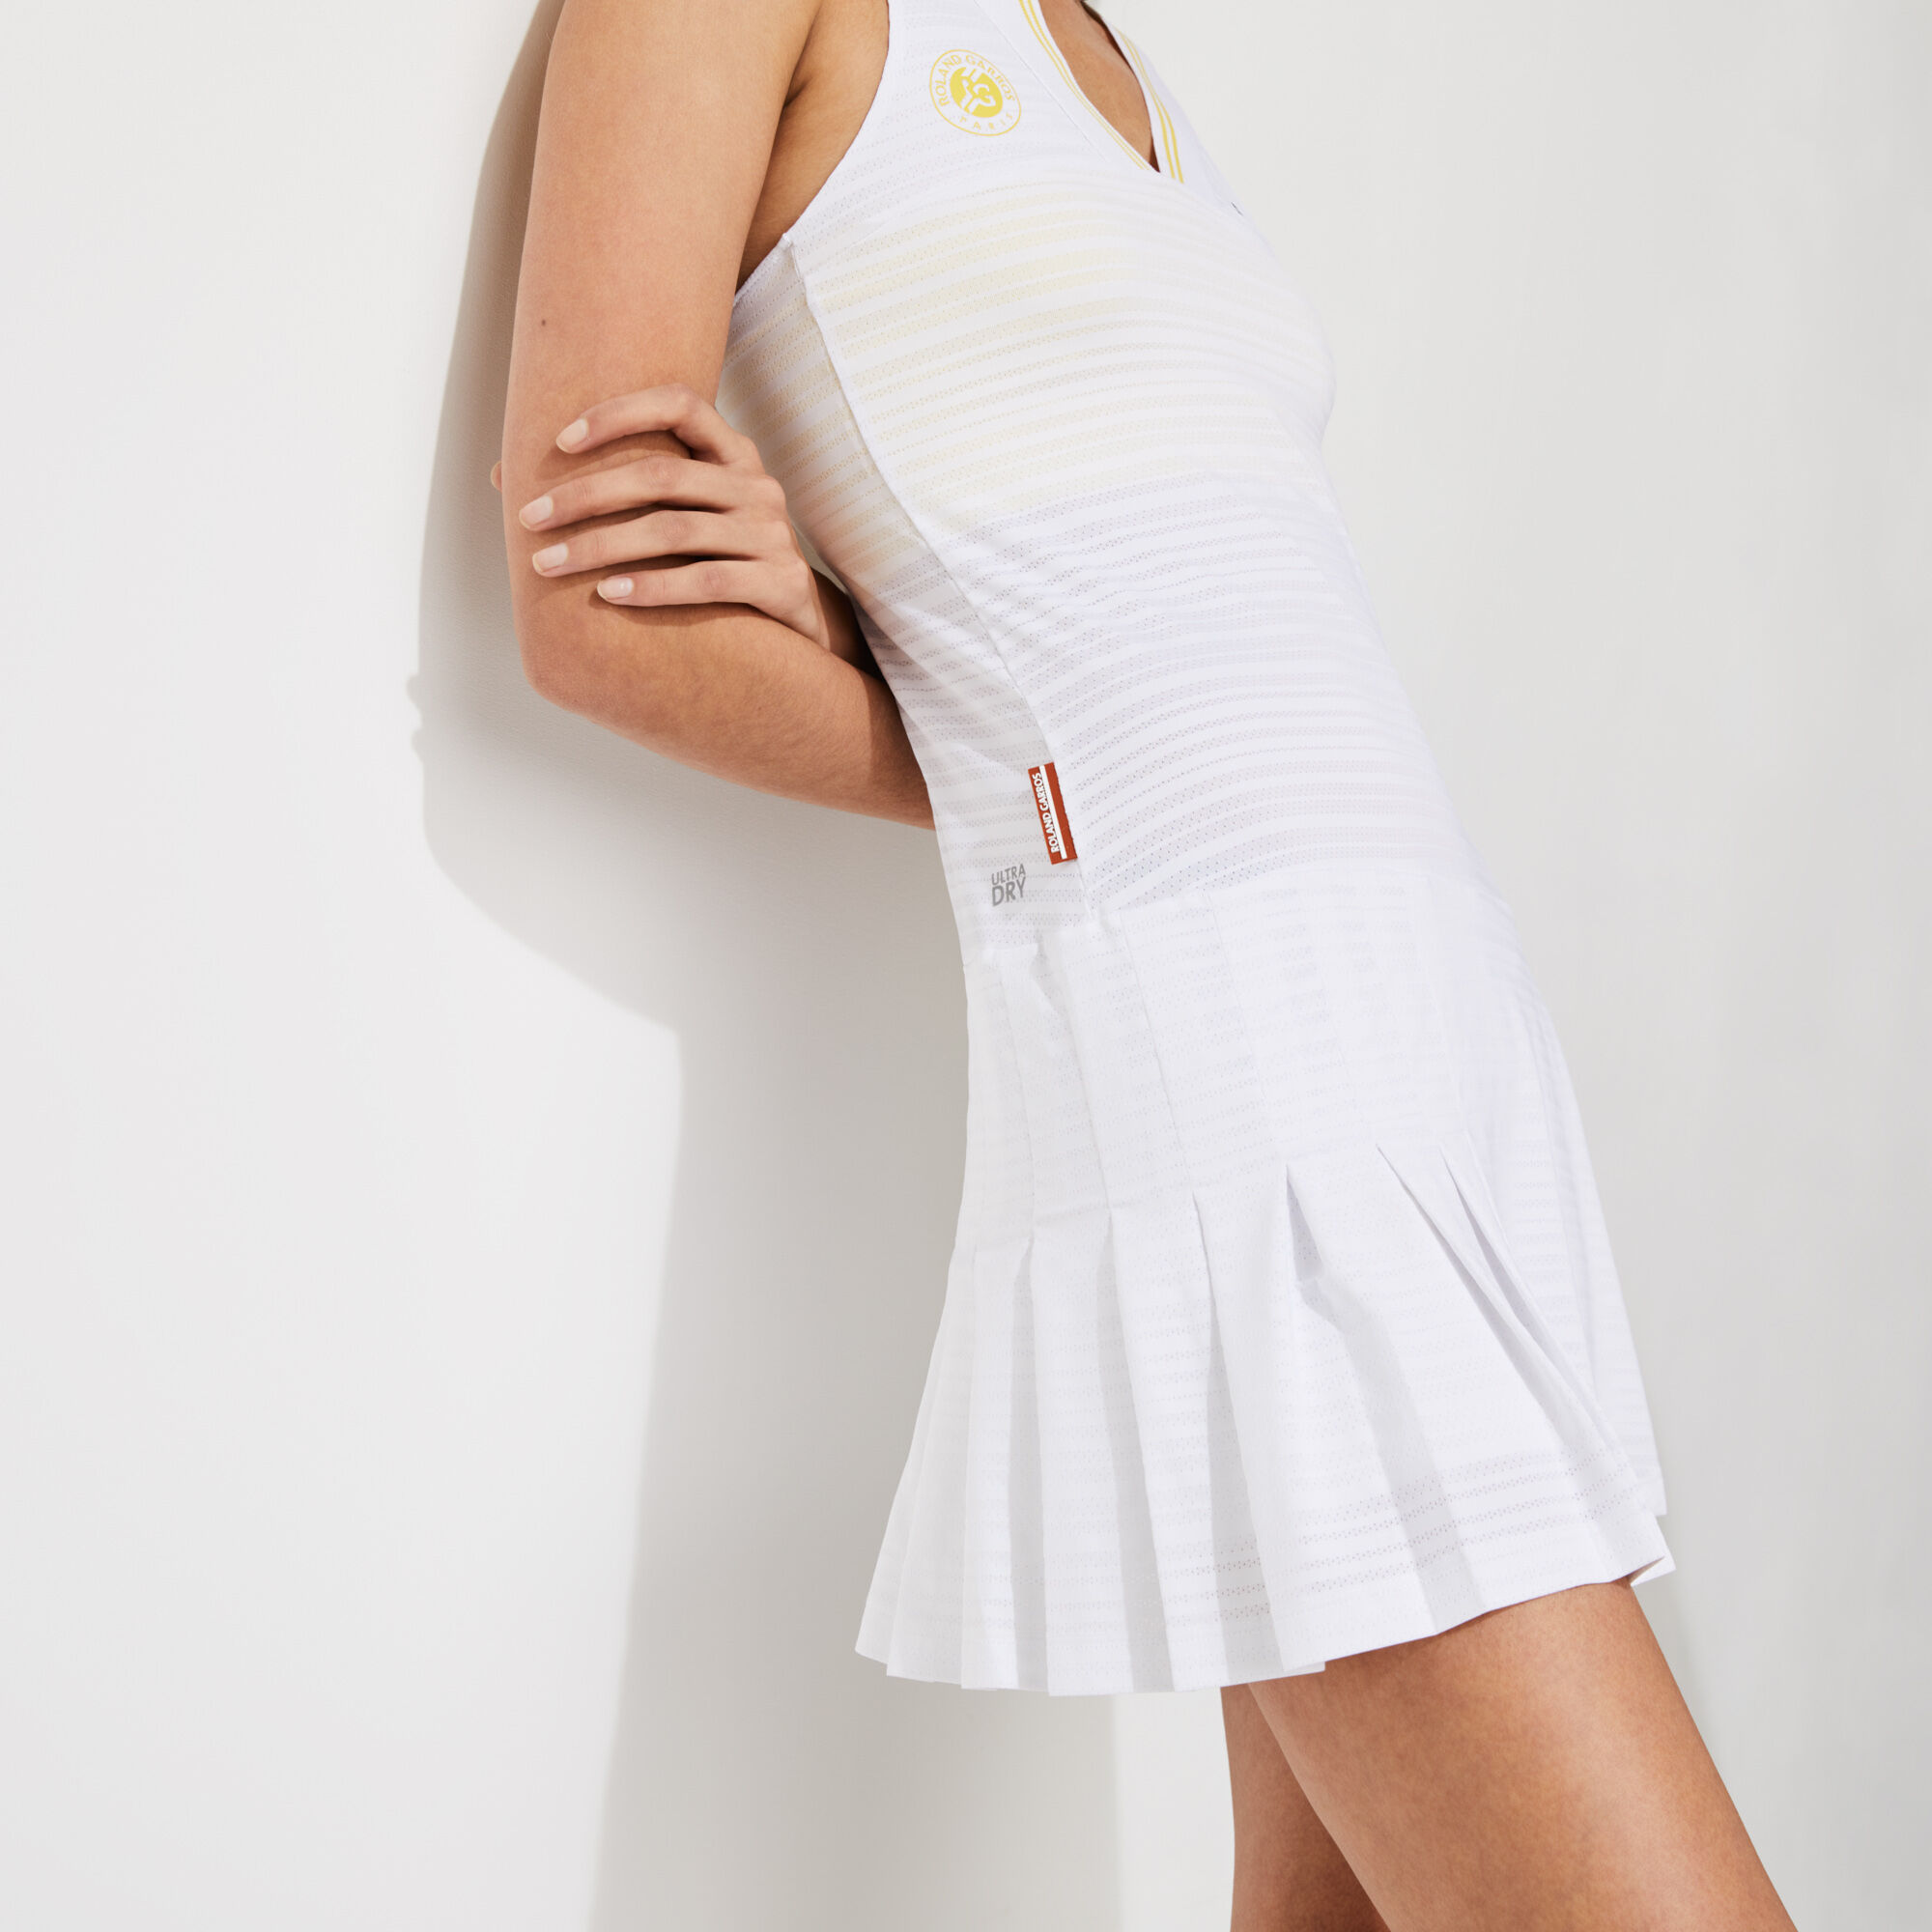 Women's Lacoste SPORT French Open Edition Stretch Dress